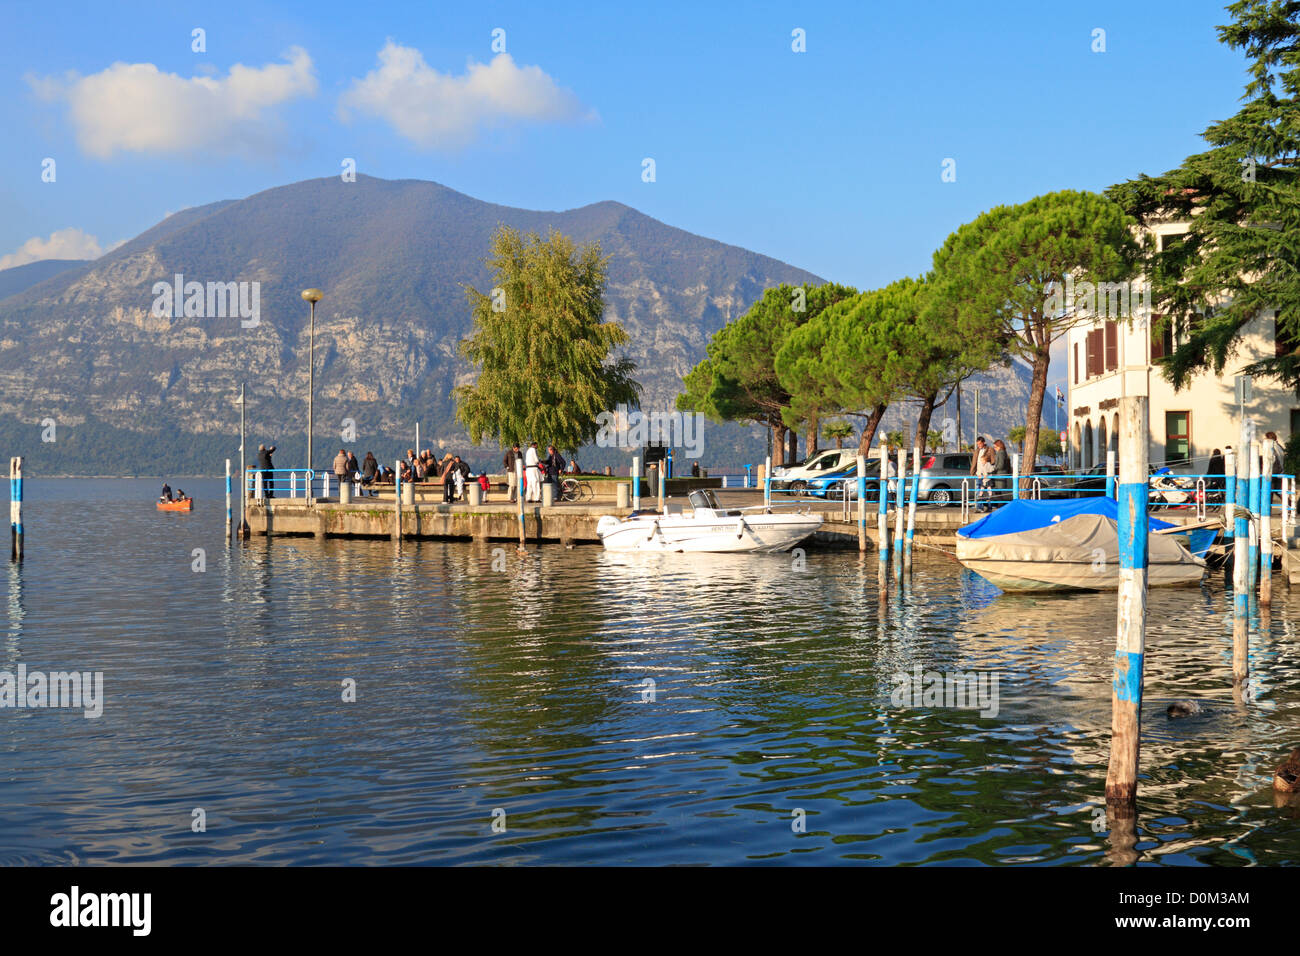 Harbour on Lake Iseo near Bergamo, Lombardy, Italy, Europe. Stock Photo